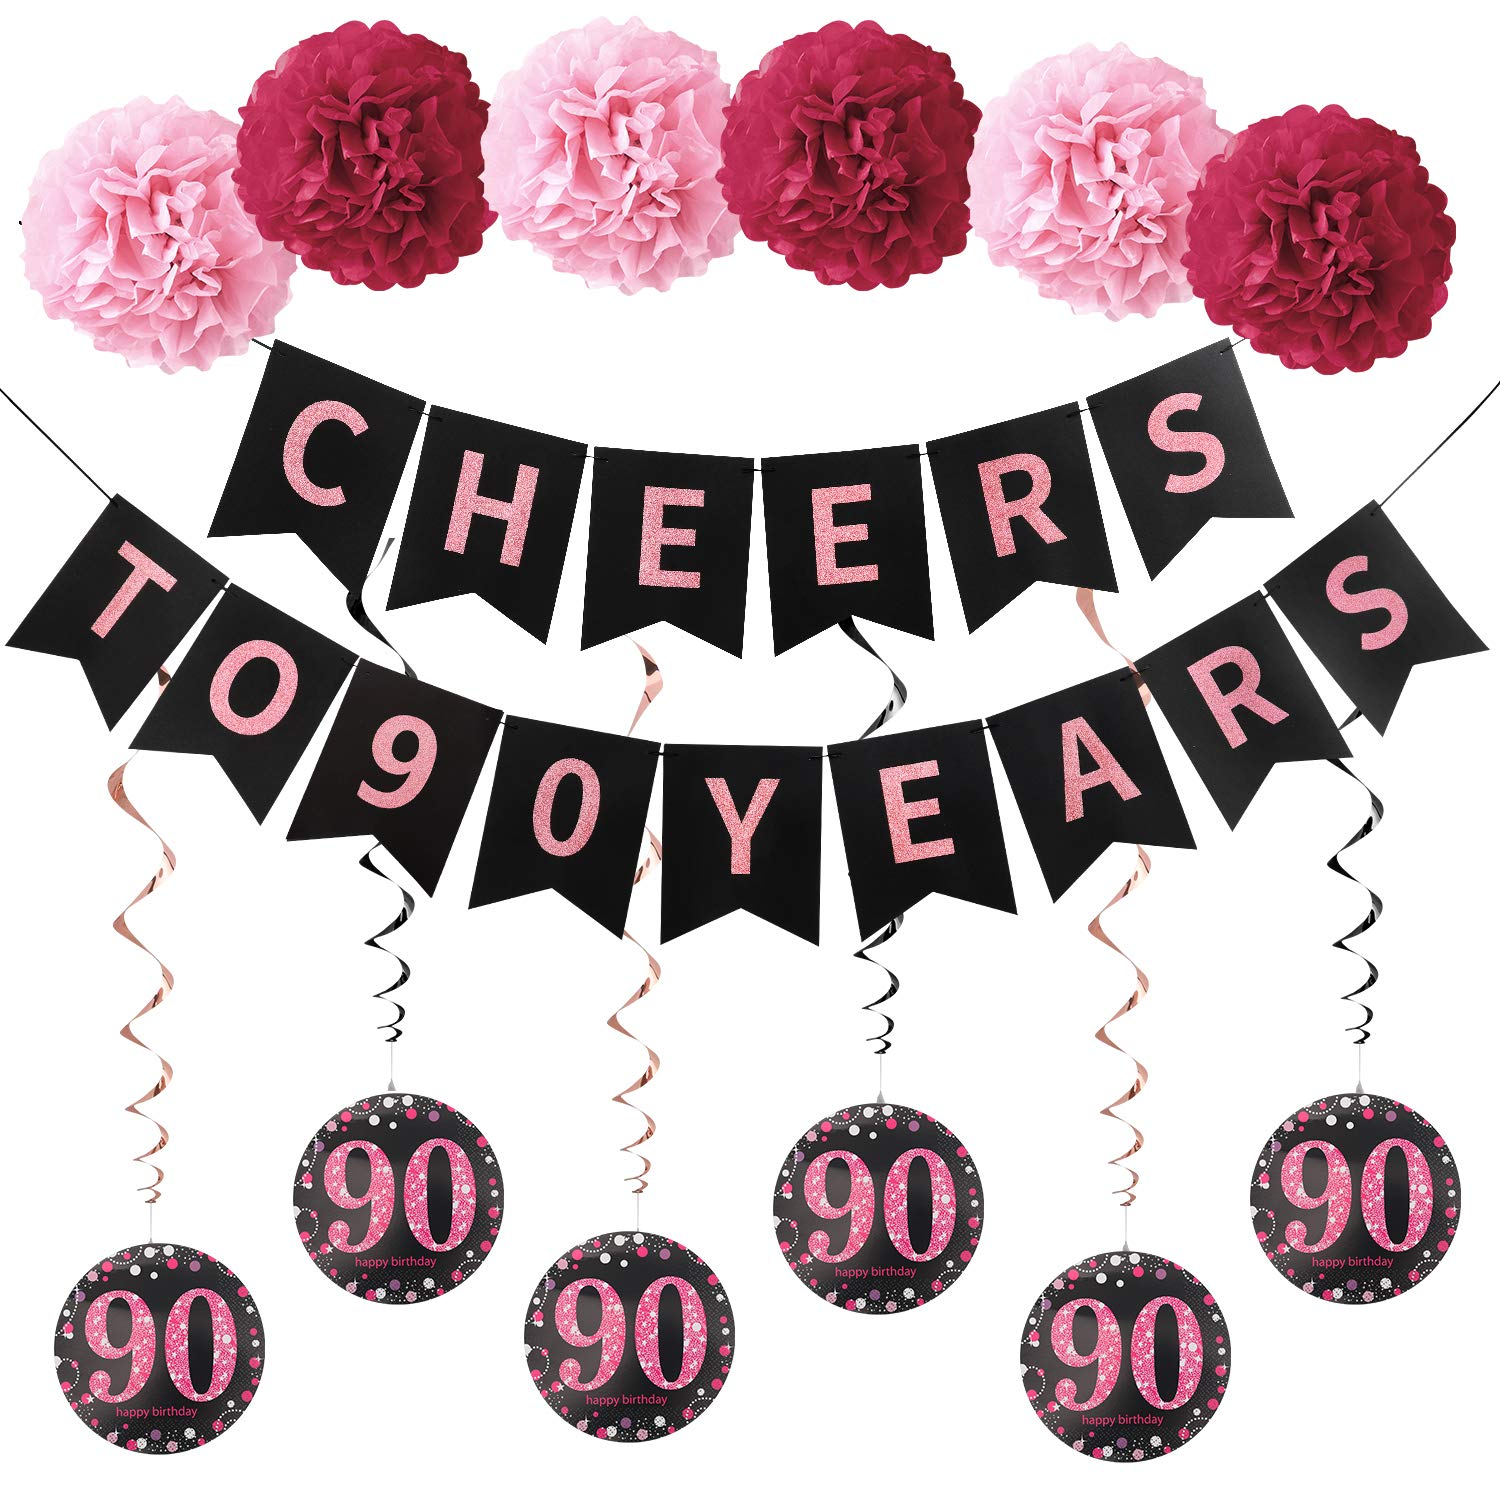 90 years old 90th birthday decor Cheers to 90 years cheers to 90 90th anniversary 90th decorations happy 90th birthday happy 90th